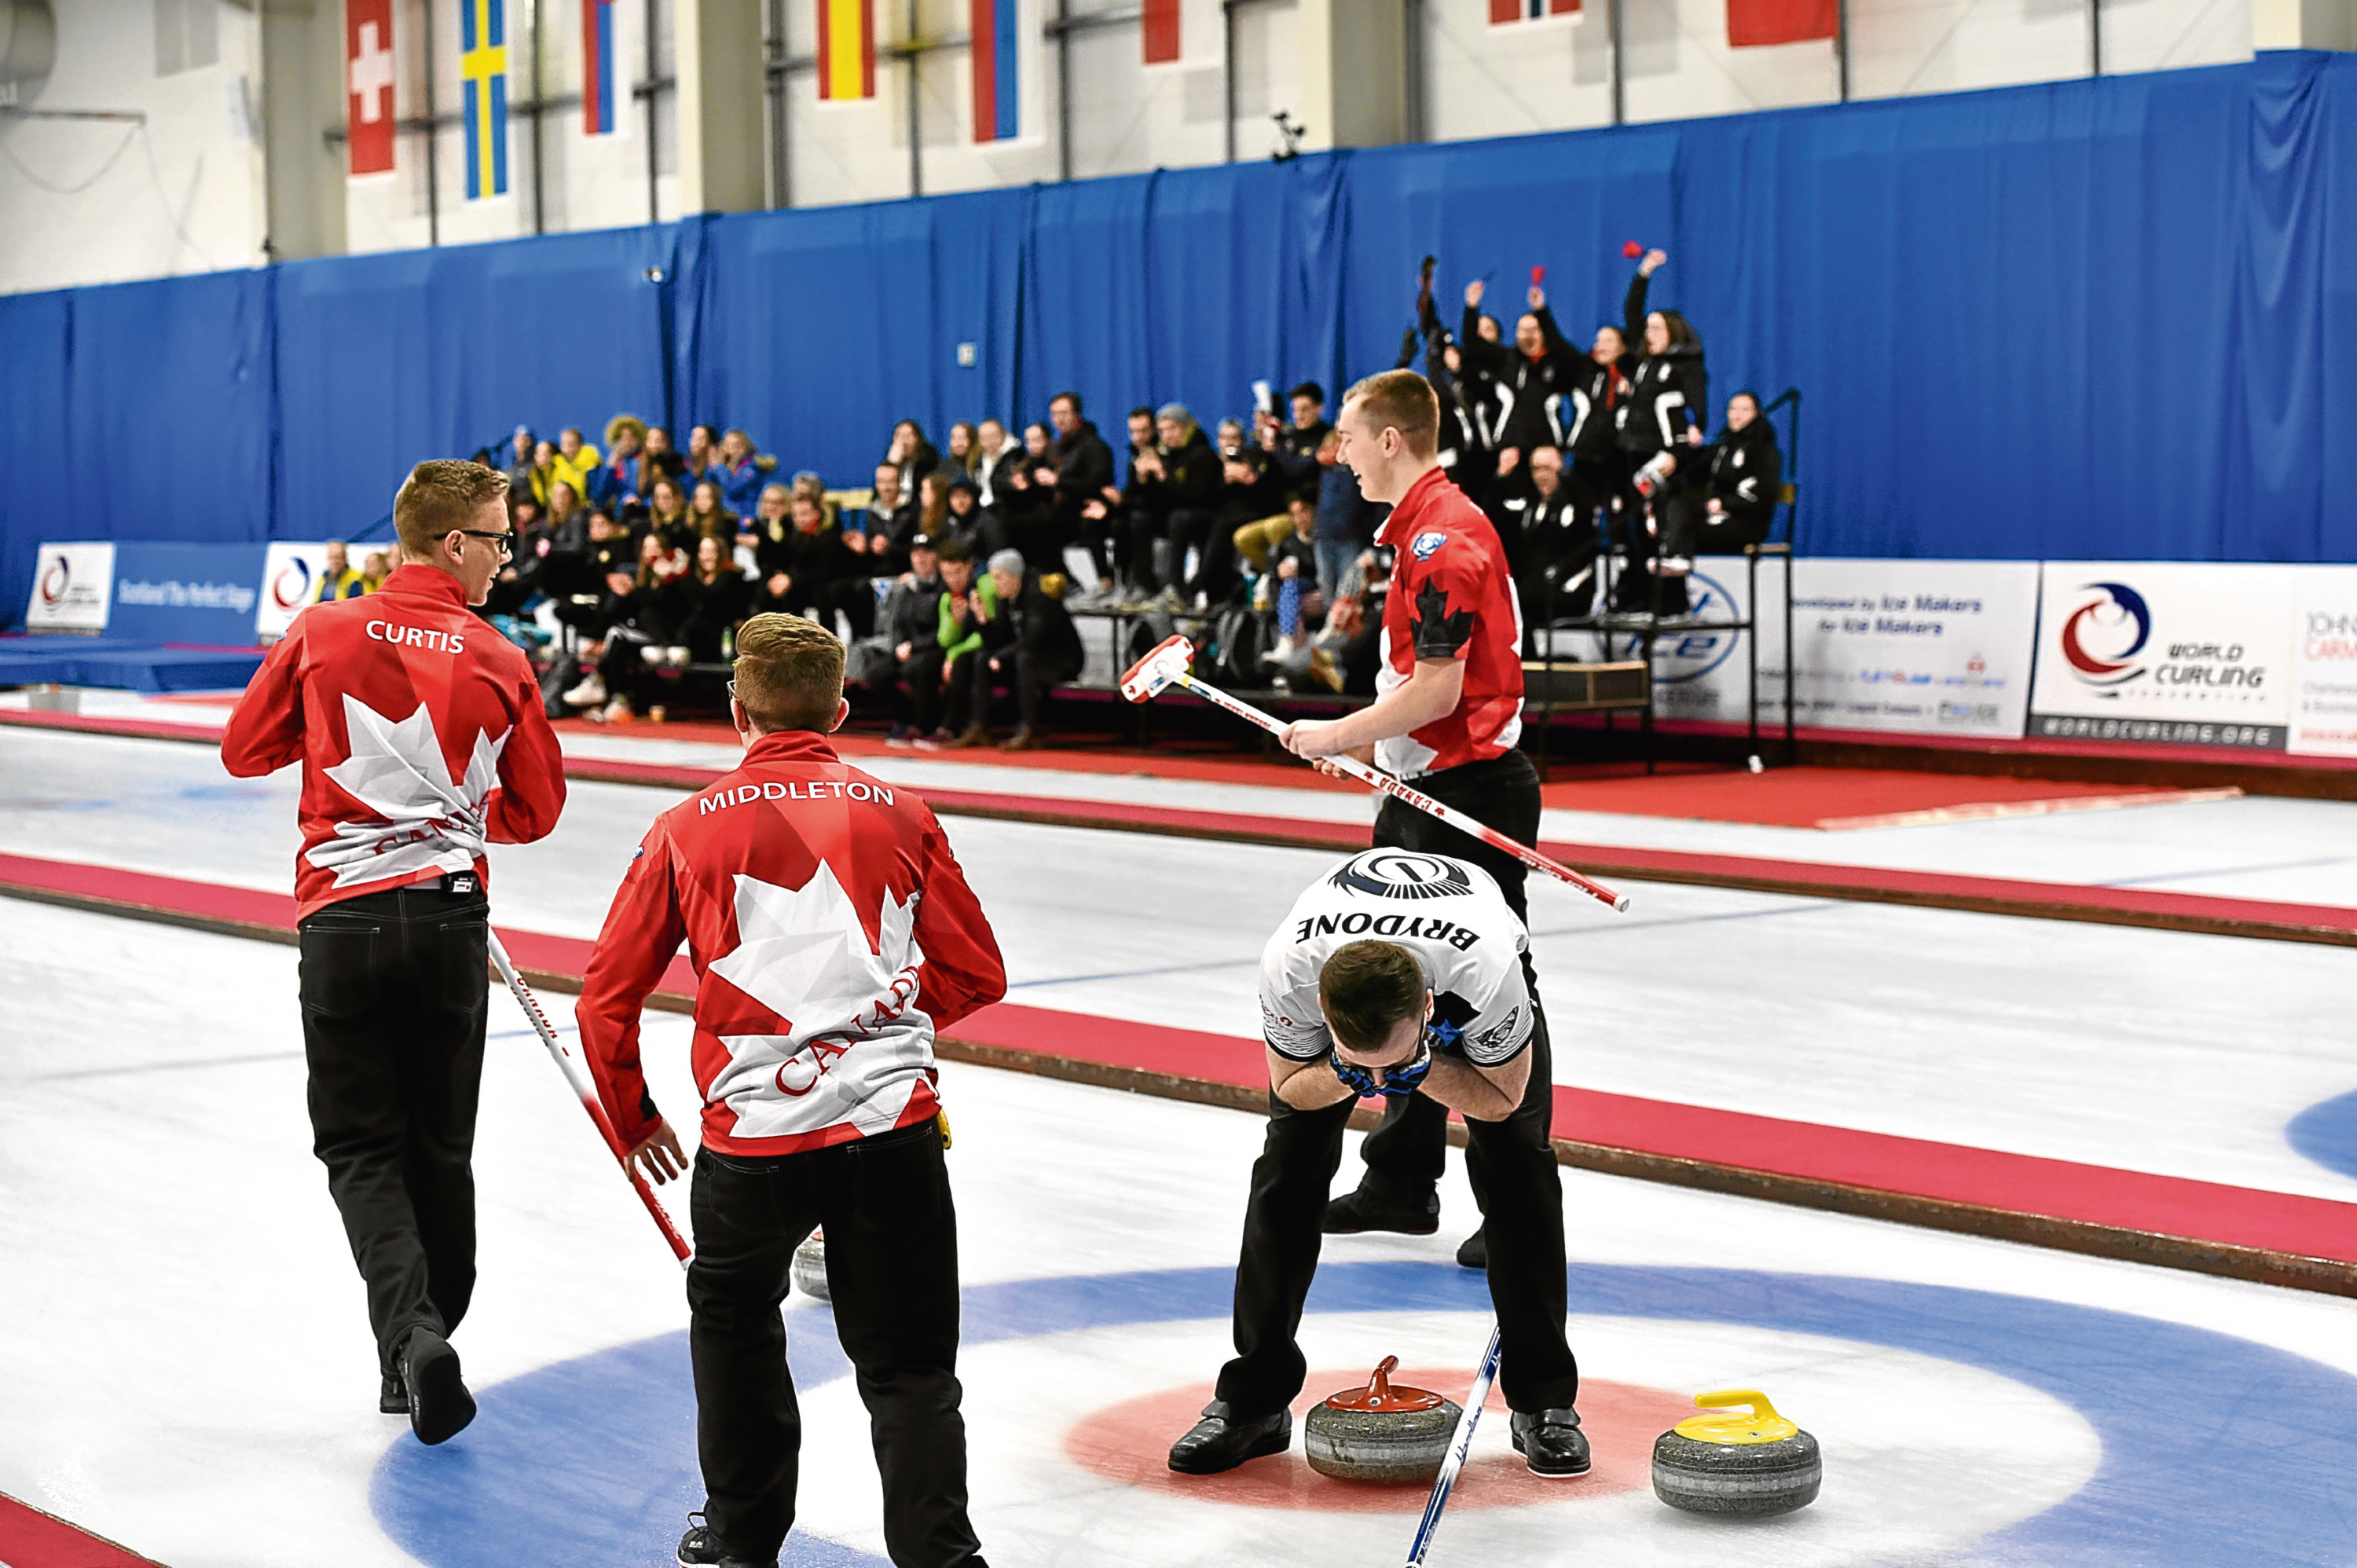 World Junior Curling Championships held at Aberdeen Curling.